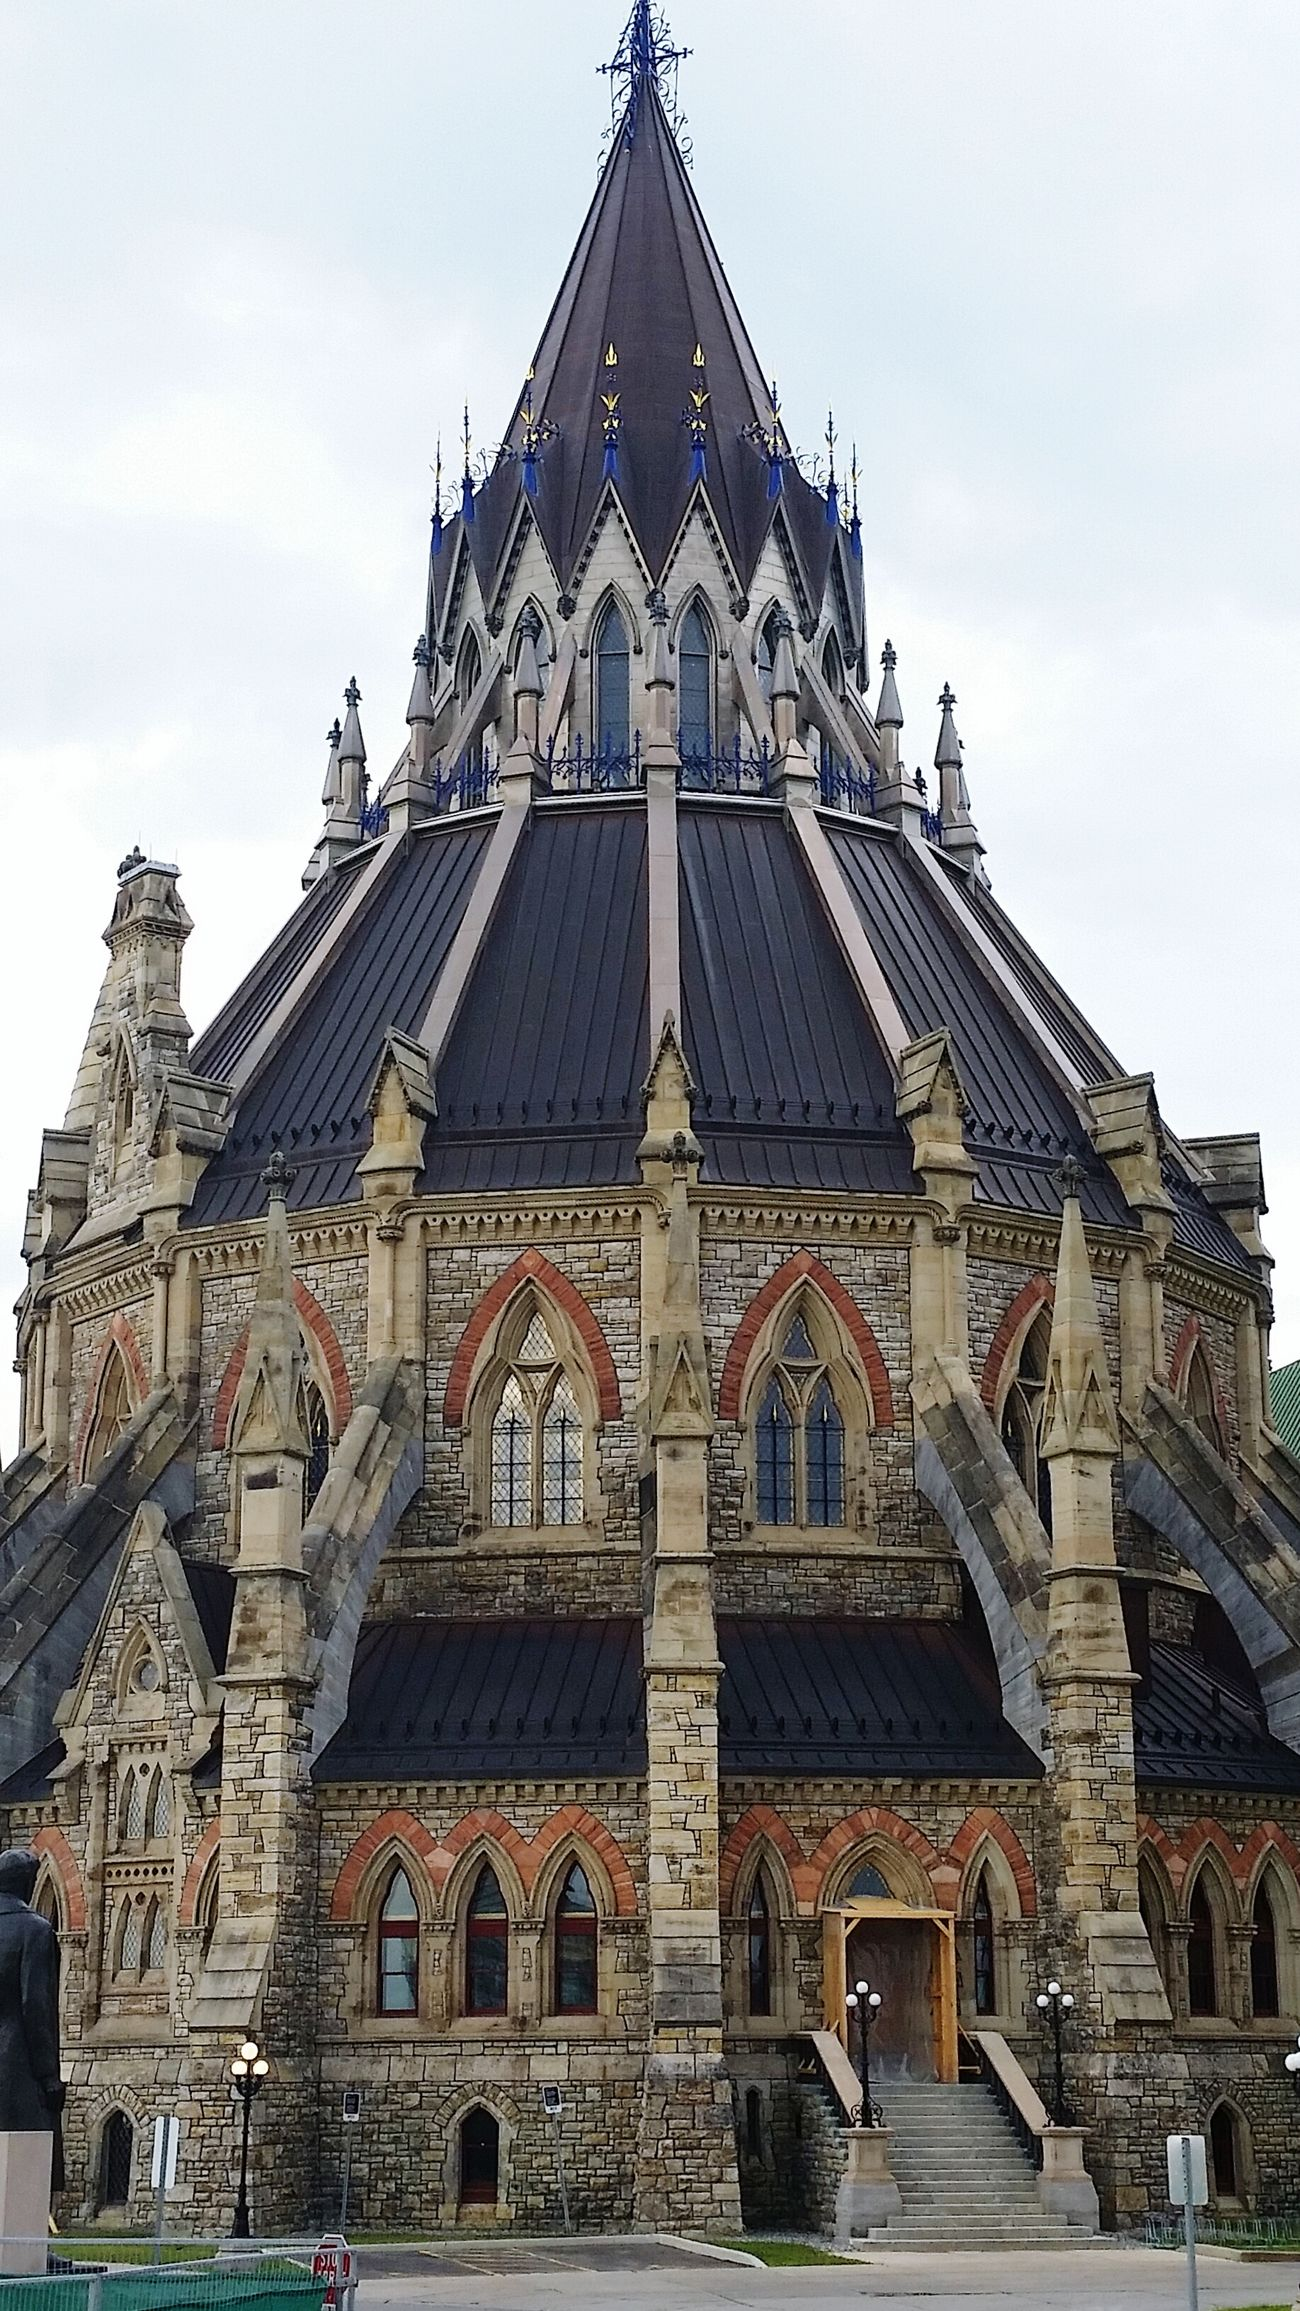 Another picture taken at the Canadian parliment building. Beautiful Architecture Colorful Cloudy Day Details Texture Vacation Castle